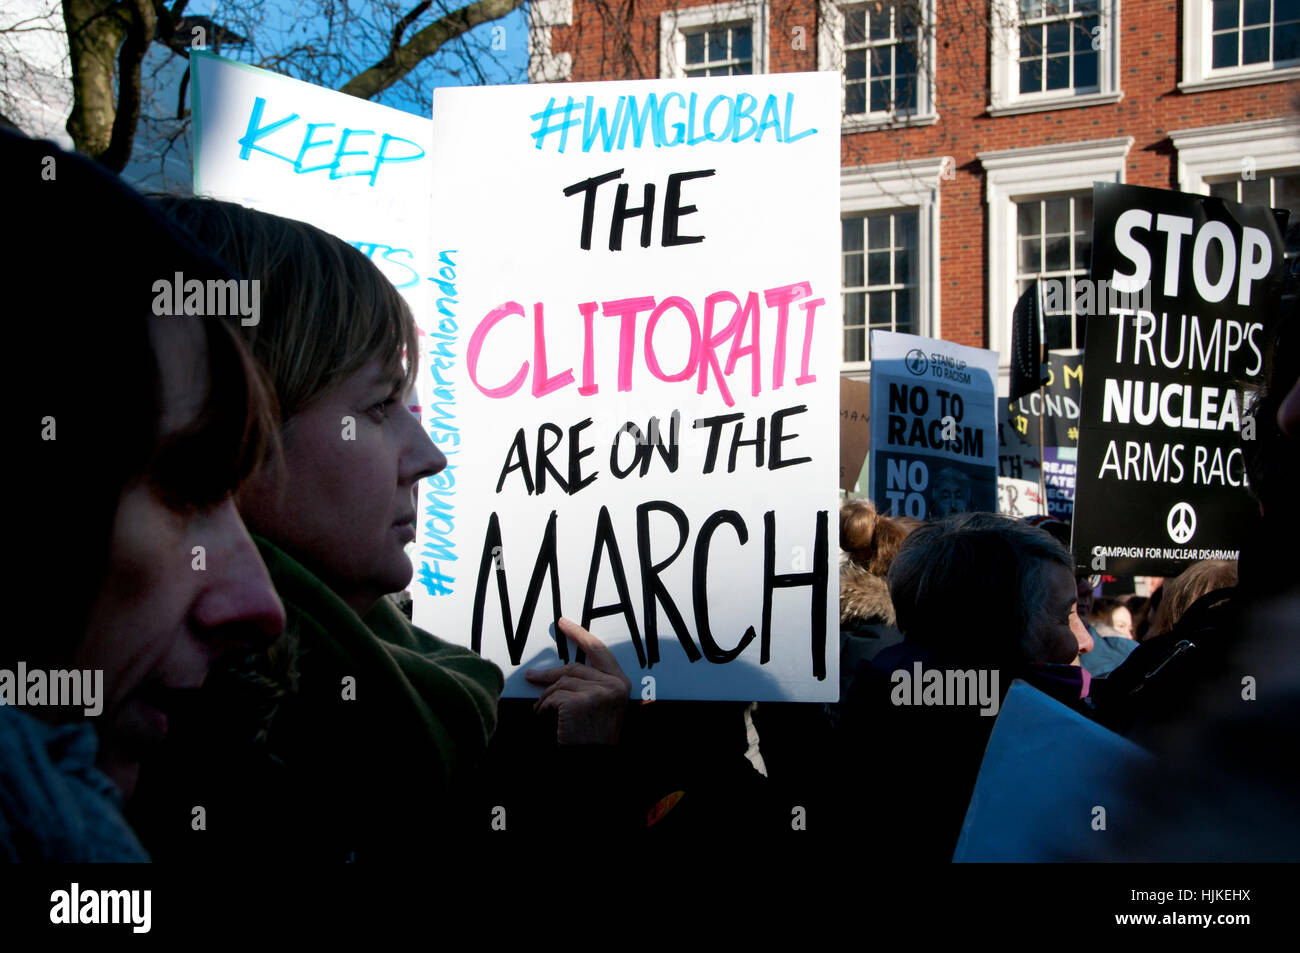 Women's anti-Trump march, London.Placard saying 'The clitorati are on the move'. - Stock Image